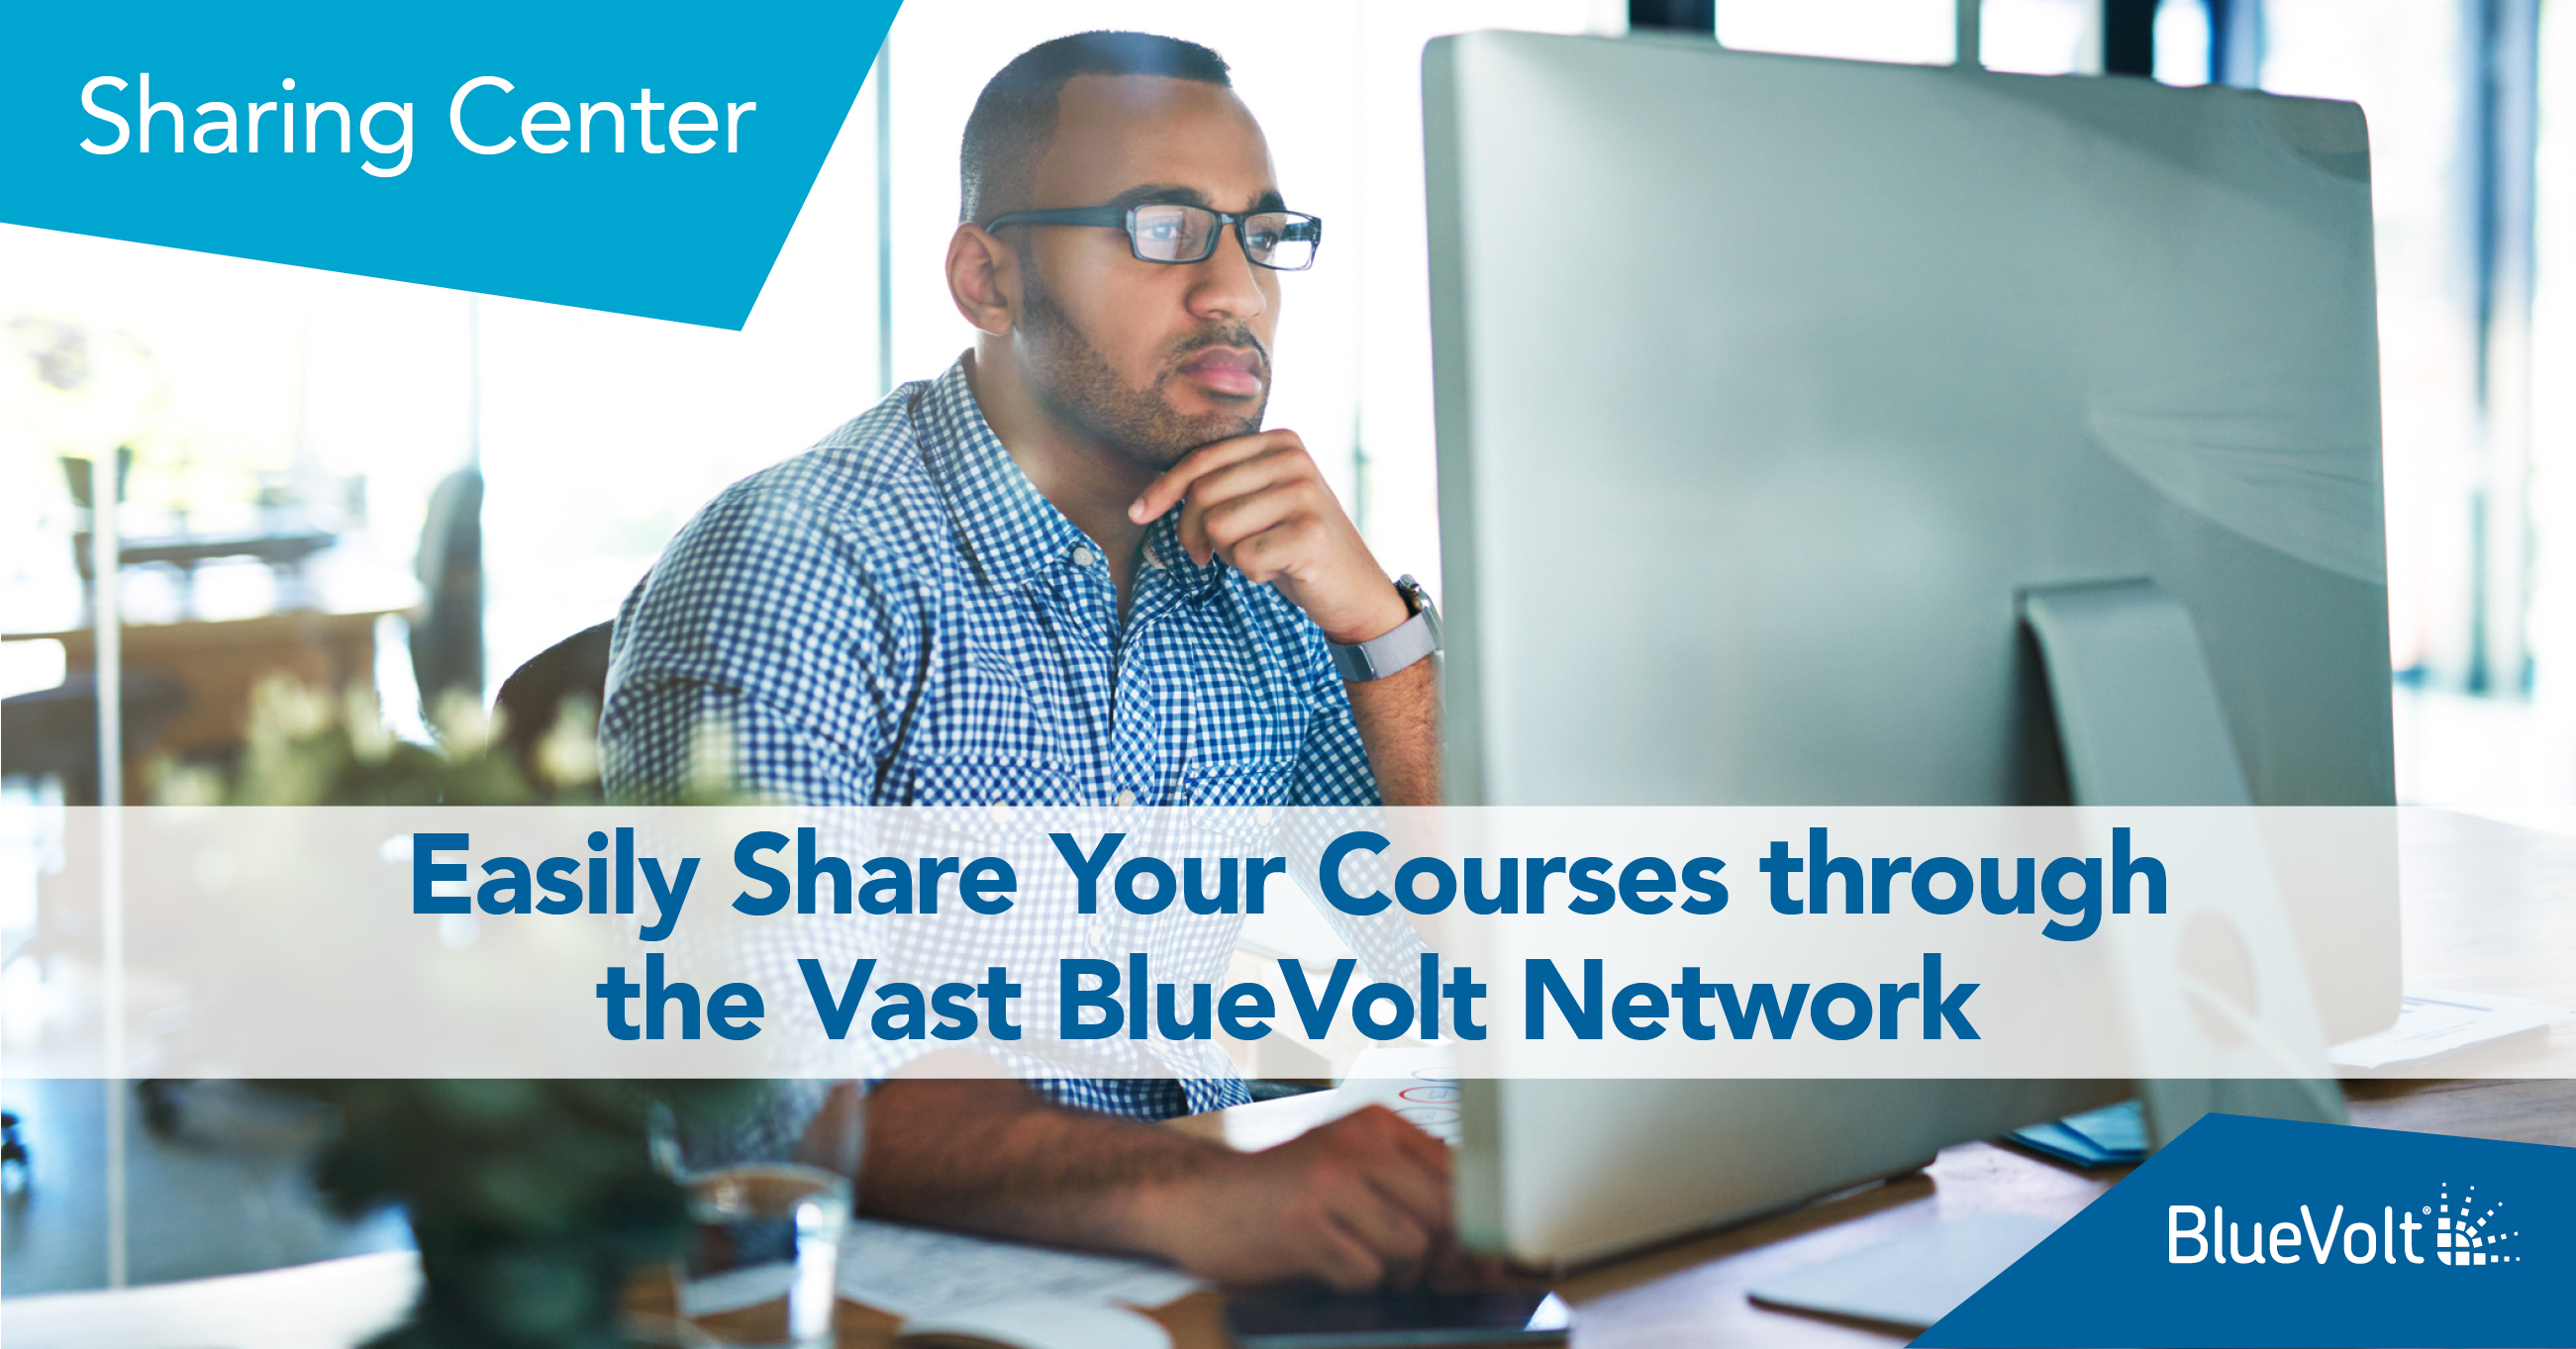 Easily Share your Courses Through the Vast BlueVolt Network